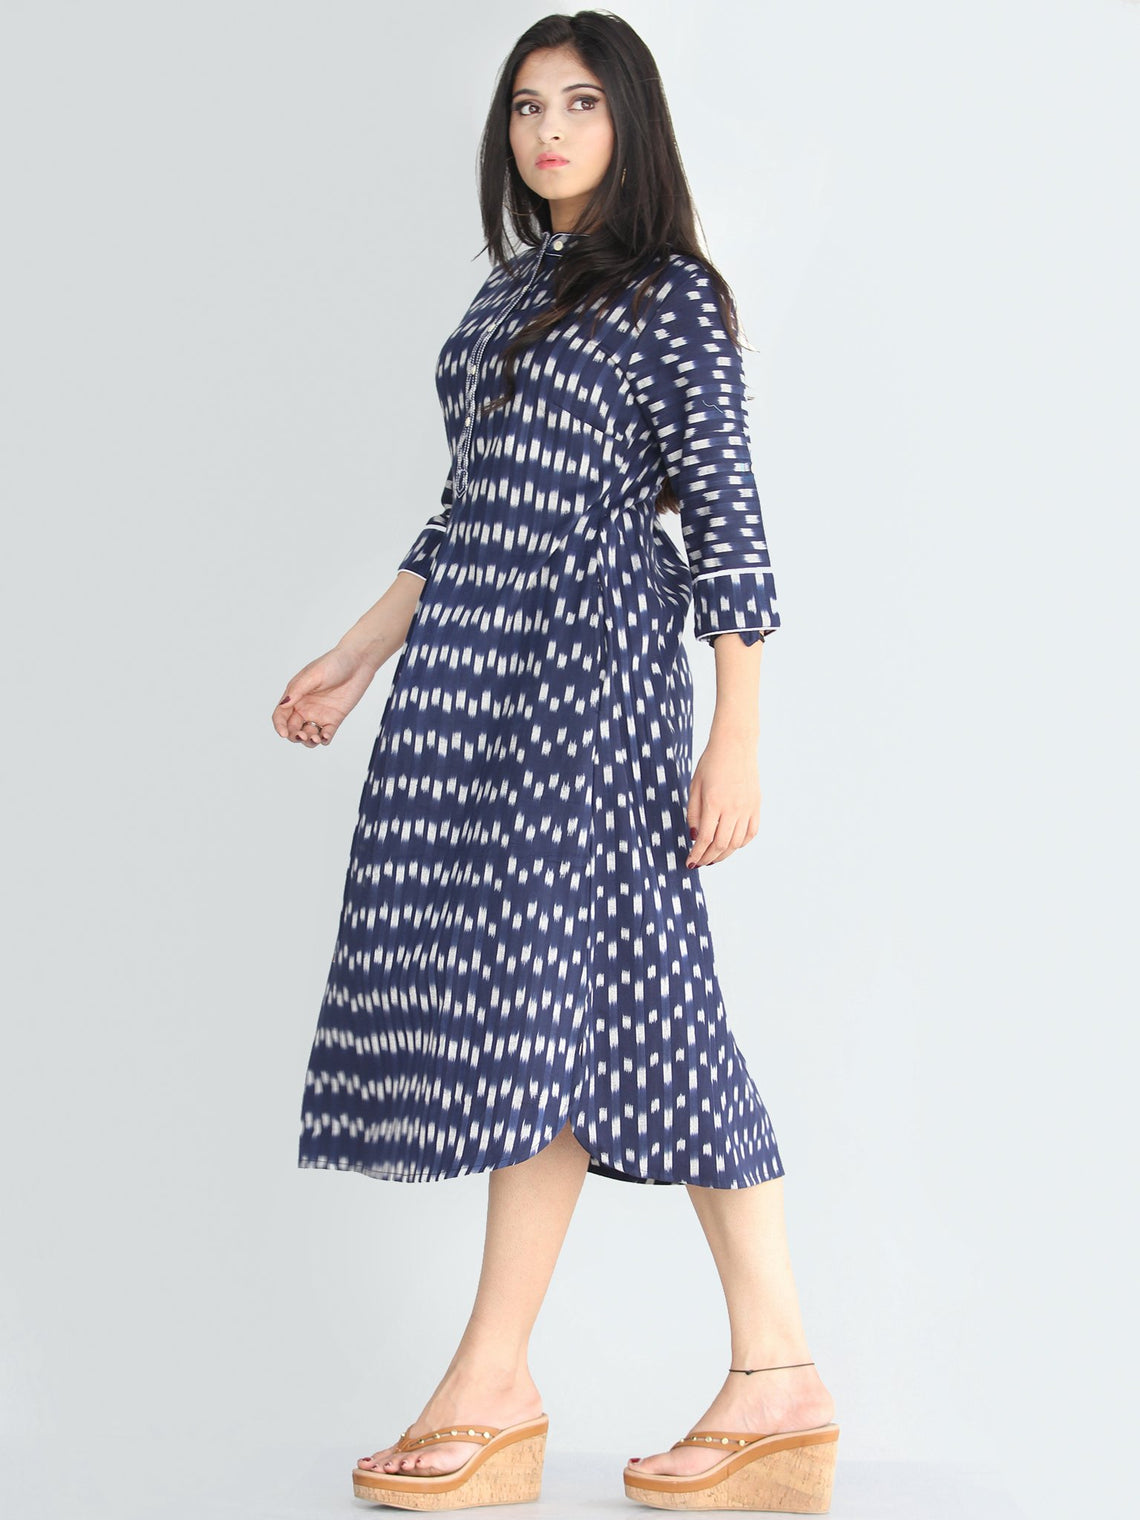 Faizah - Handwoven Ikat Cotton Shirt Dress - D414F1573